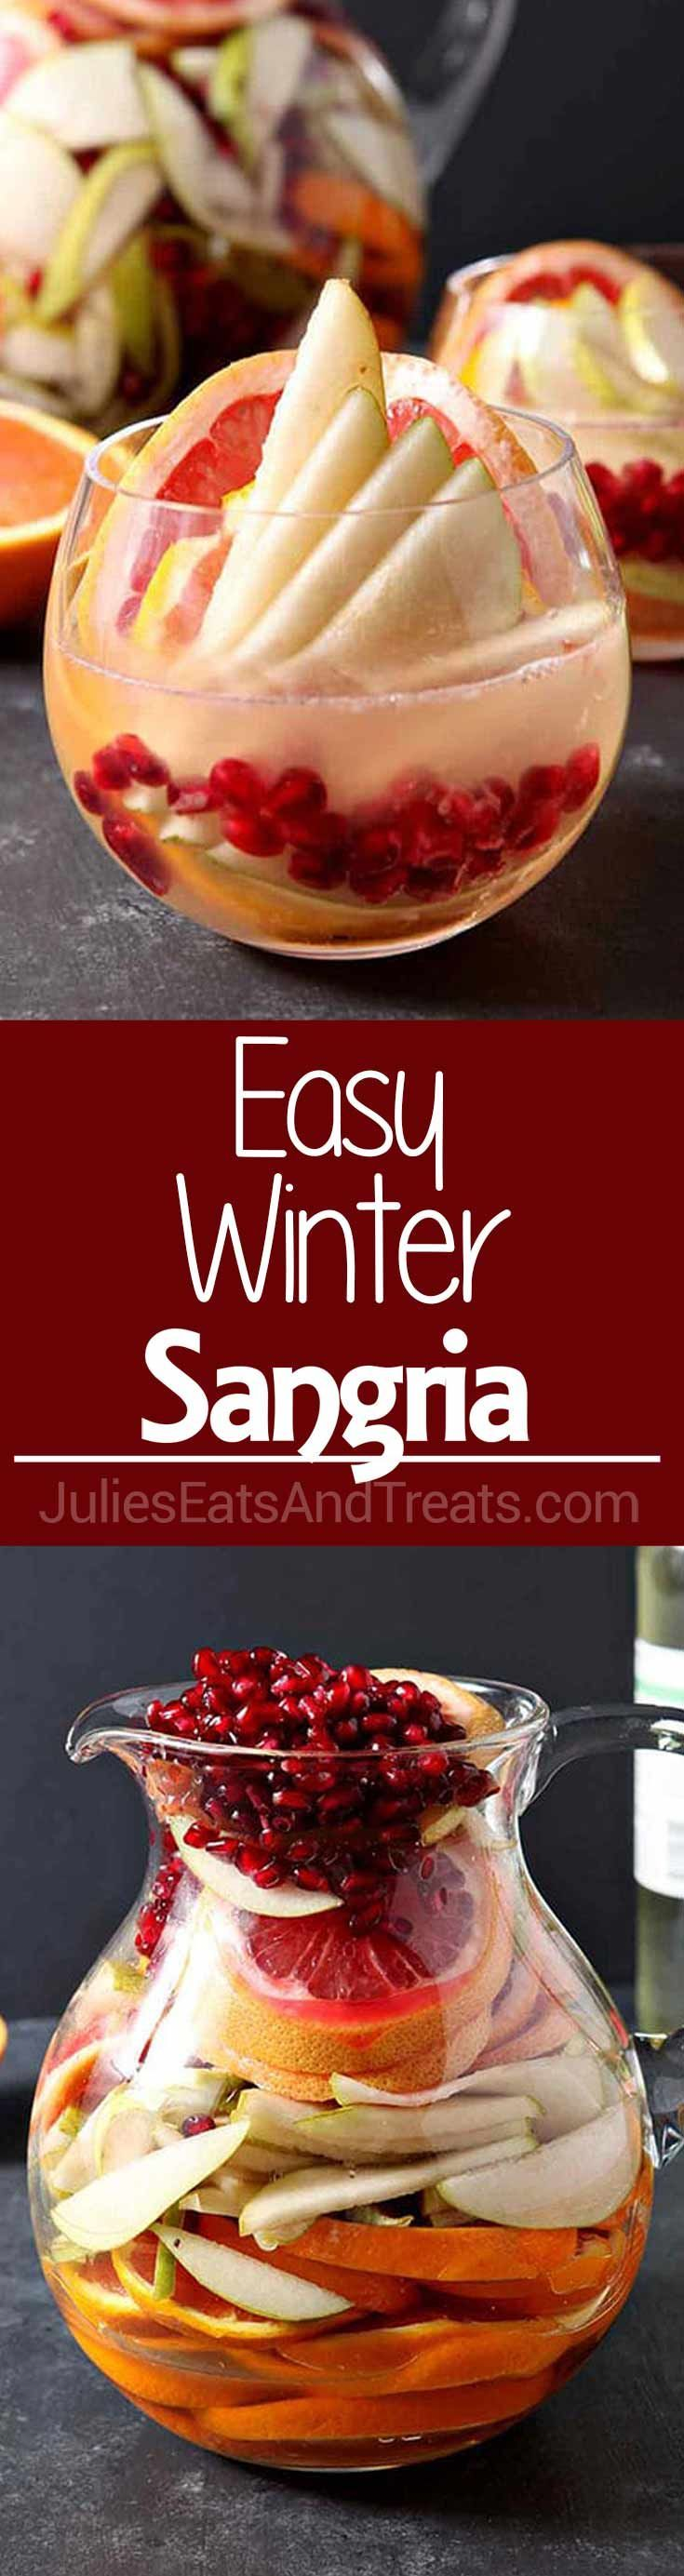 Winter Sangria ~ Full of Pink Grapefruit, Cara Cara or Blood Oranges, Pears and Pomegranates and topped with White Wine and Mint Simple Syrup! This Sangria is Bursting with Flavor! via @julieseats Winter Sangria ~ Full of Pink Grapefruit, Cara Cara or Blood Oranges, Pears and Pomegranates and topped with White Wine and Mint Simple Syrup! This Sangria is Bursting with Flavor! If you're looking for easy drink recipes, you'll enjoy the tart sweetness of winter citrus in this Winter Sangria!